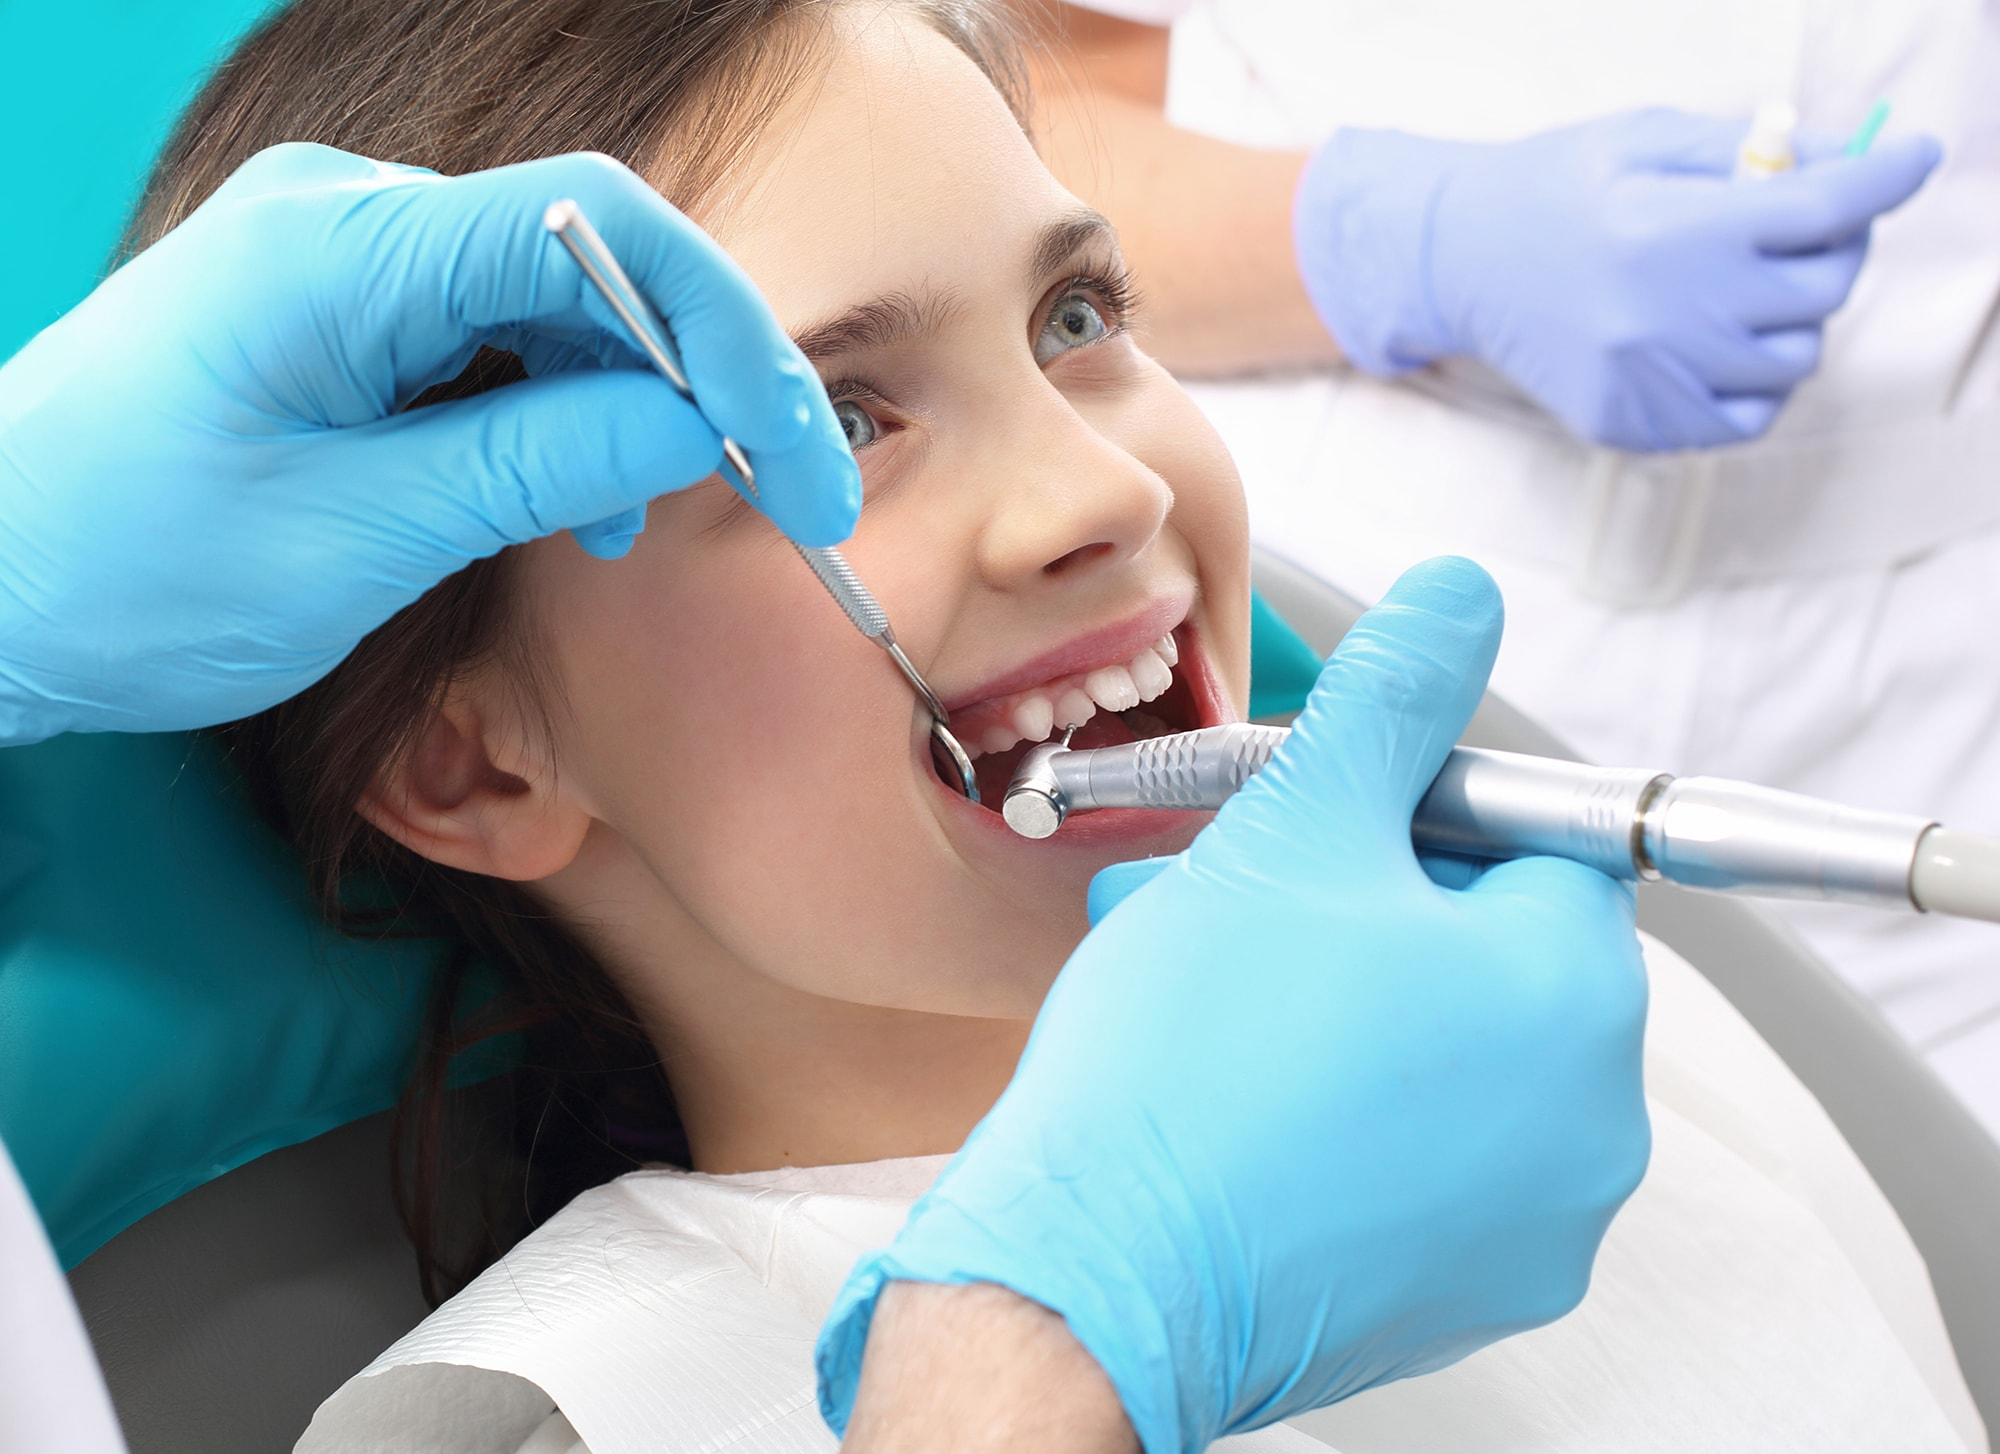 Encino dentist providing a child with fluoride and sealants at Encino Cosmetic Dentistry.